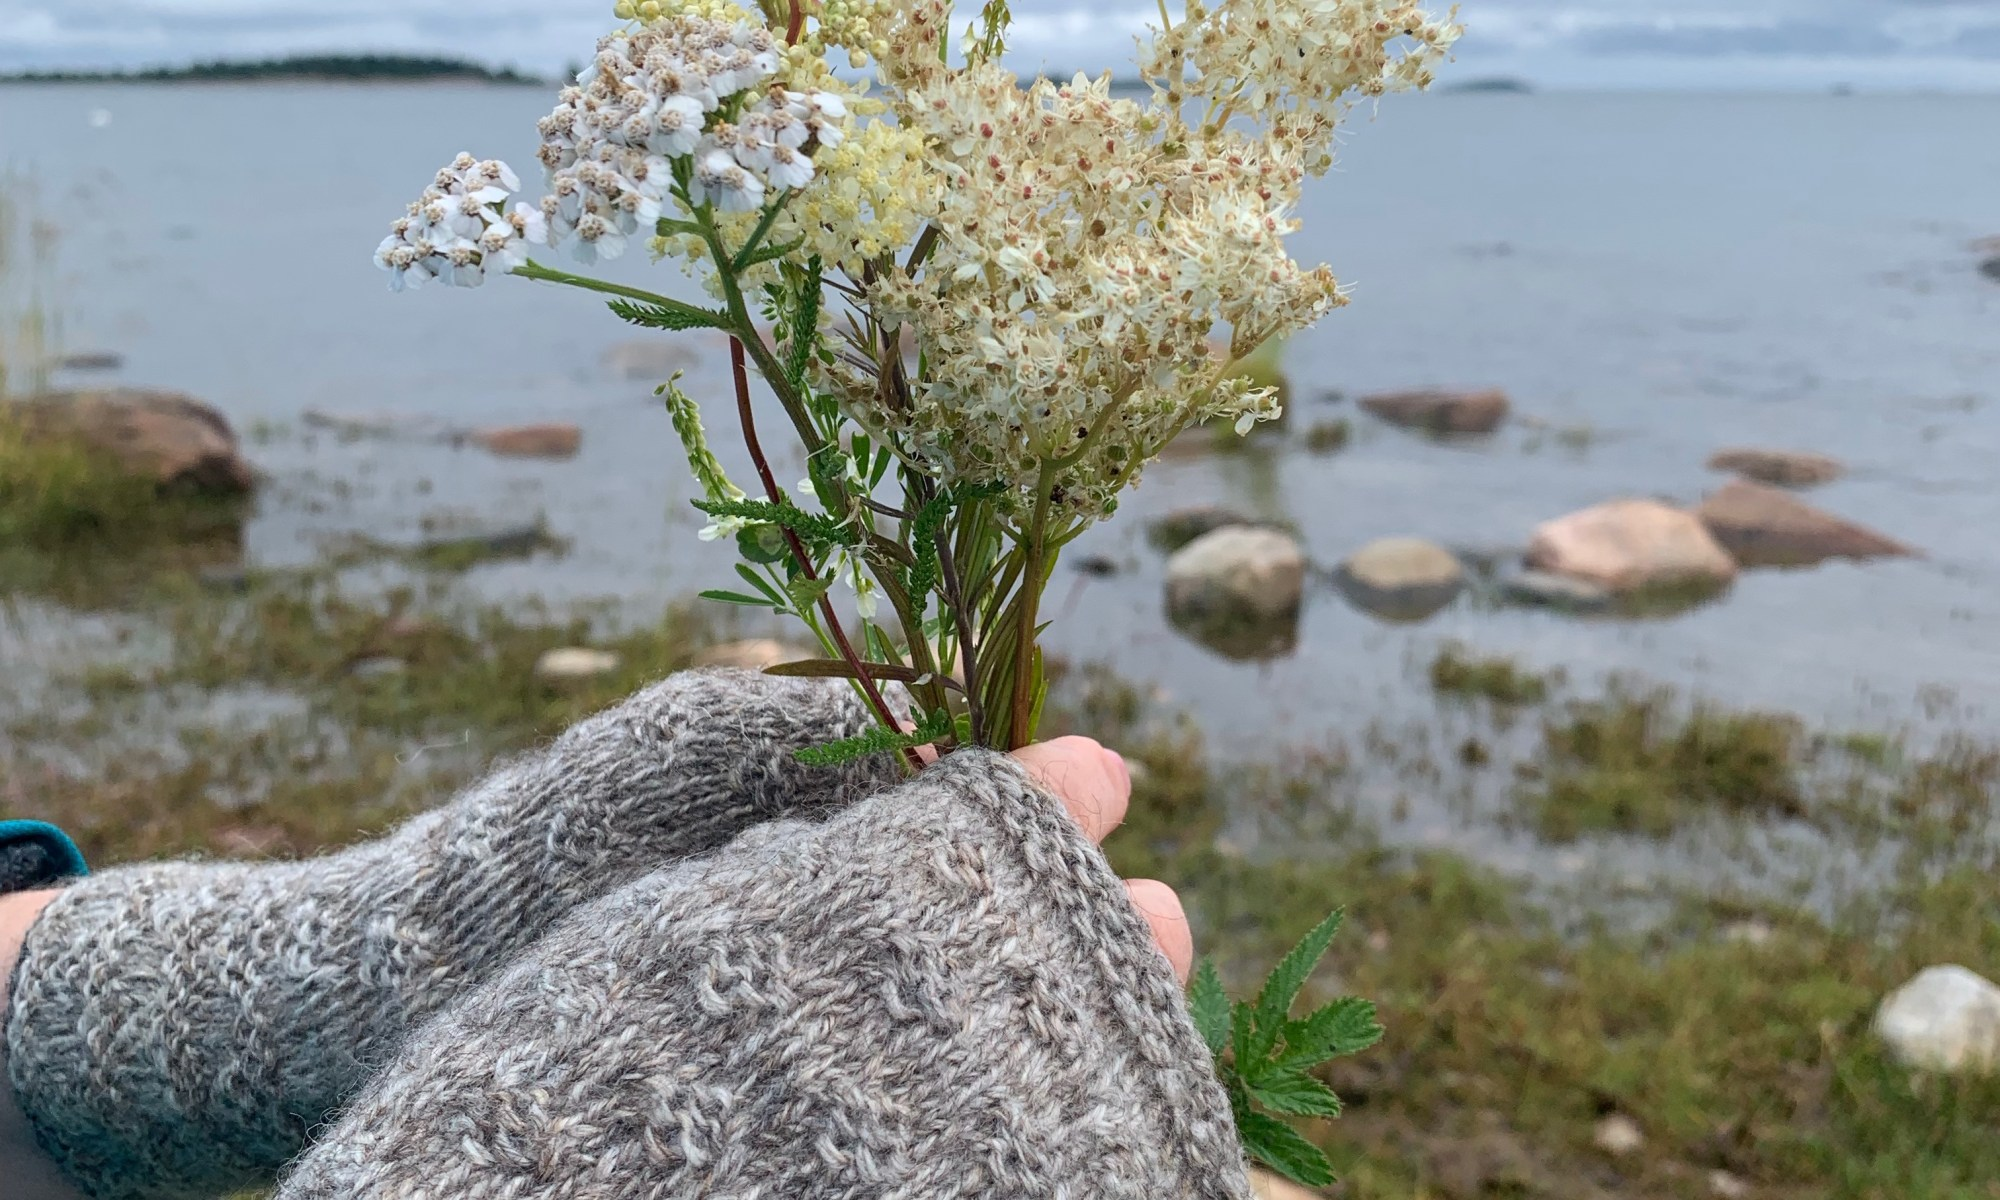 Two hands wearing mittens, and holding some wild flowers by the sea.